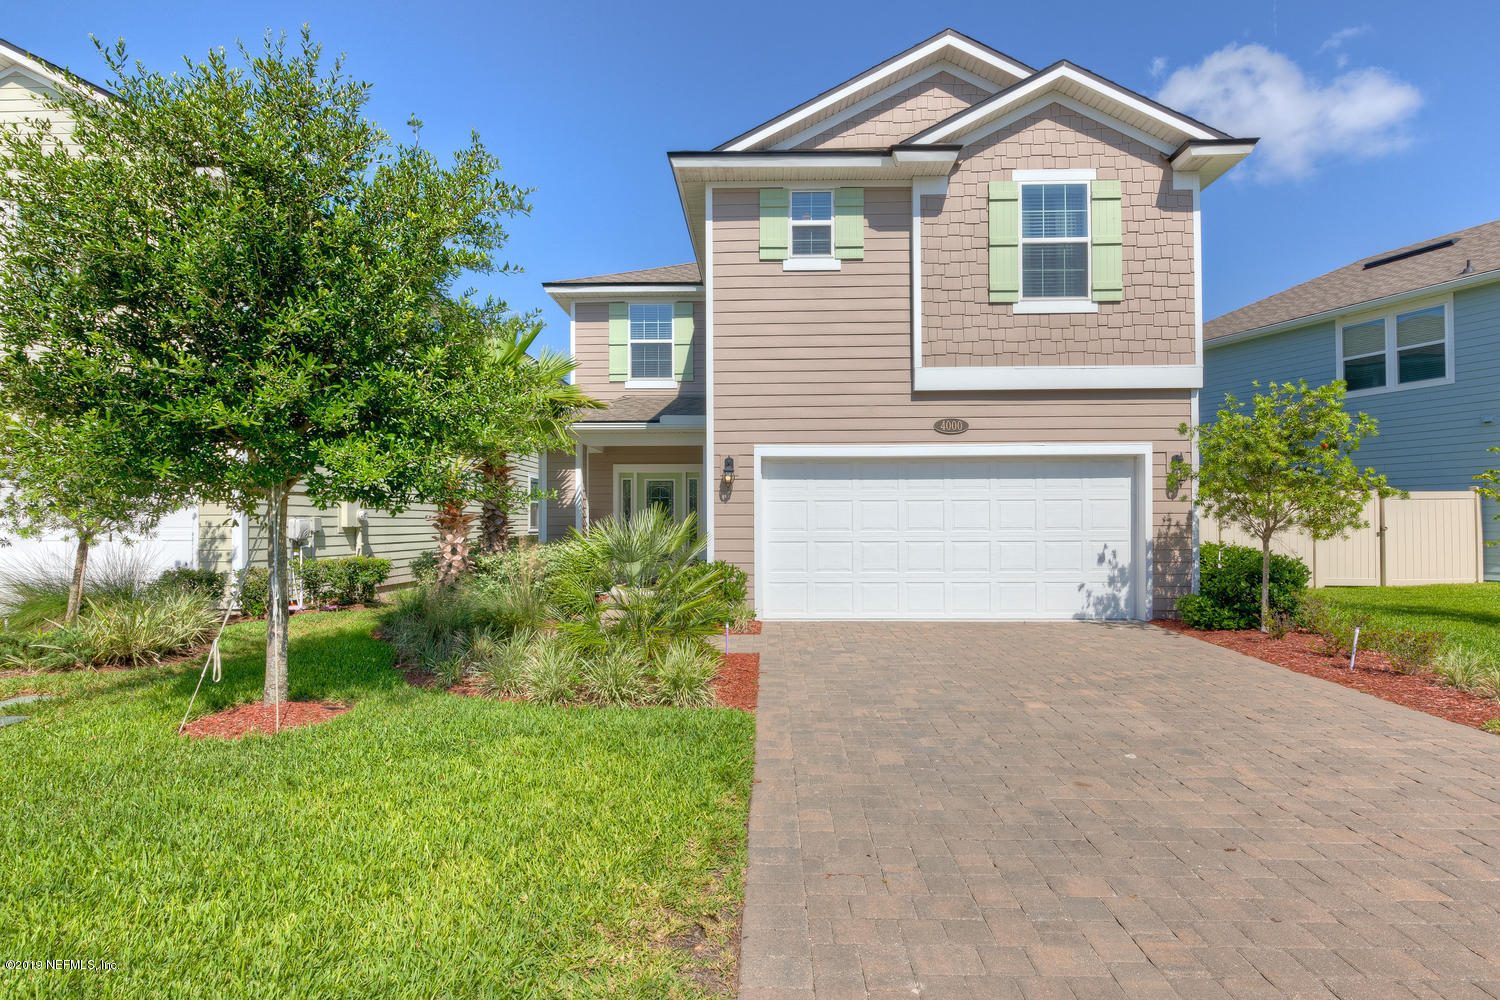 4000 Coastal Cove Cir Jacksonville, FL 32224